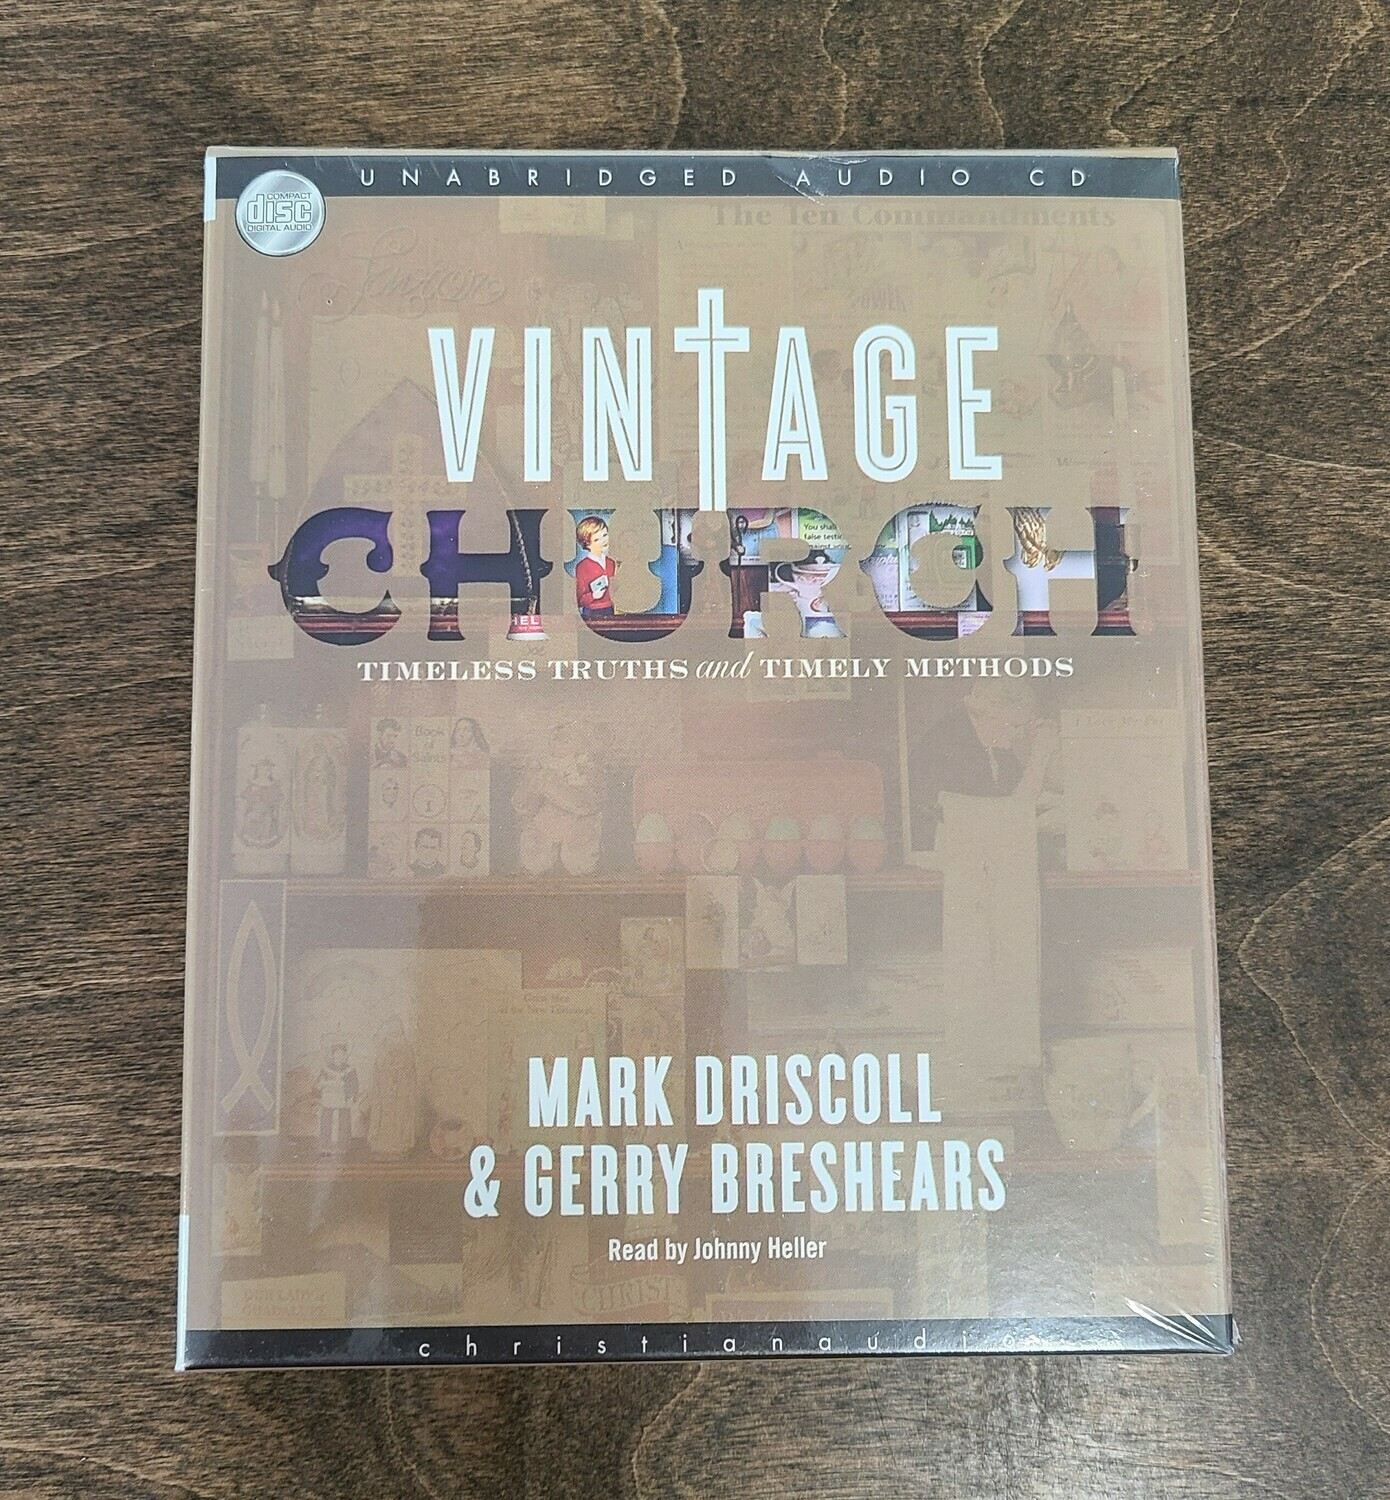 Vintage Church by Mark Driscoll and Gerry Breshears Audiobook